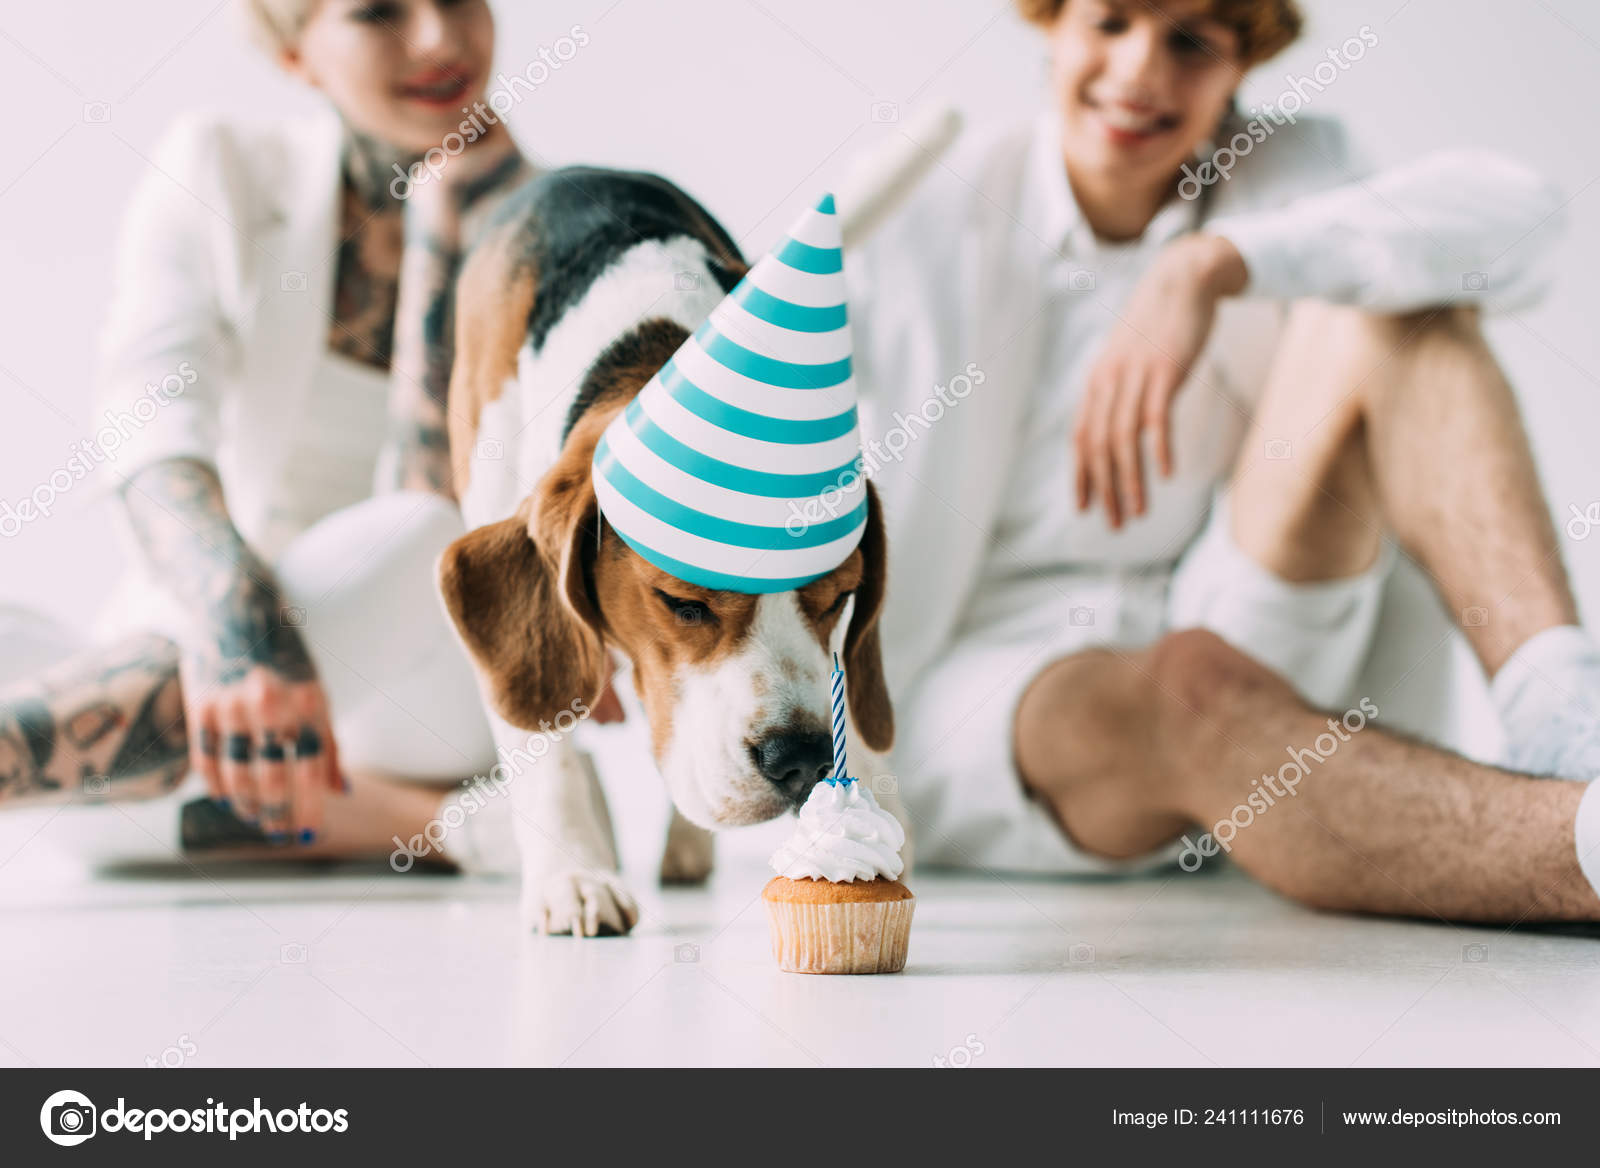 Cute Cupcake Tattoos Selective Focus Cute Beagle Dog Eating Cupcake Man Woman Grey Stock Photo C Vitalikradko 241111676